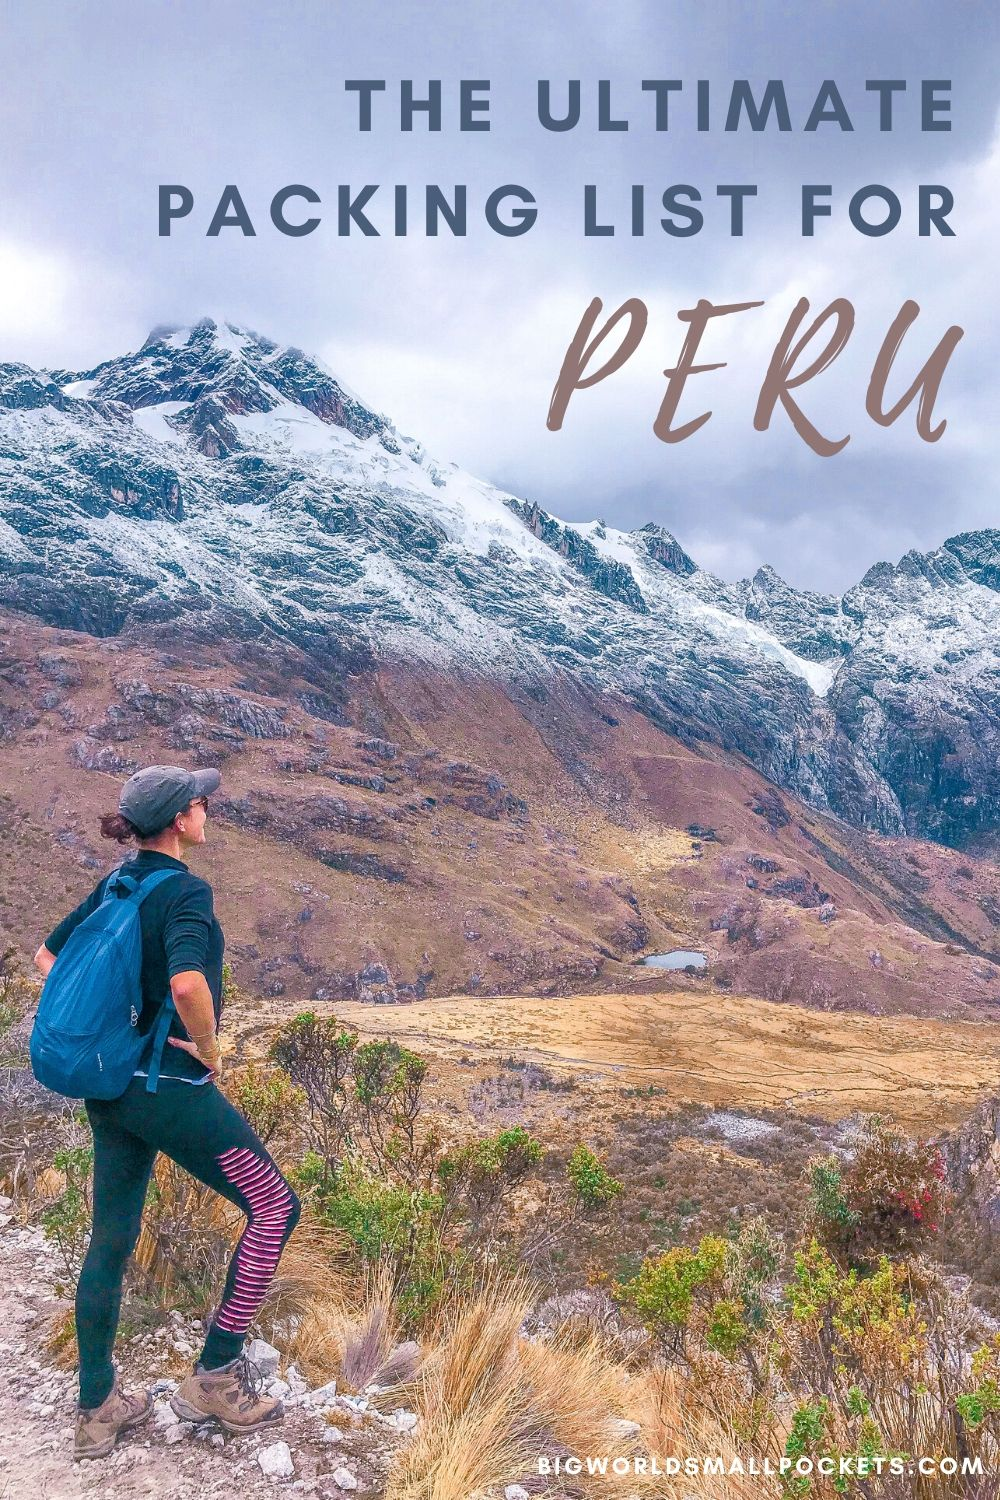 The Complete Packing List for Peru